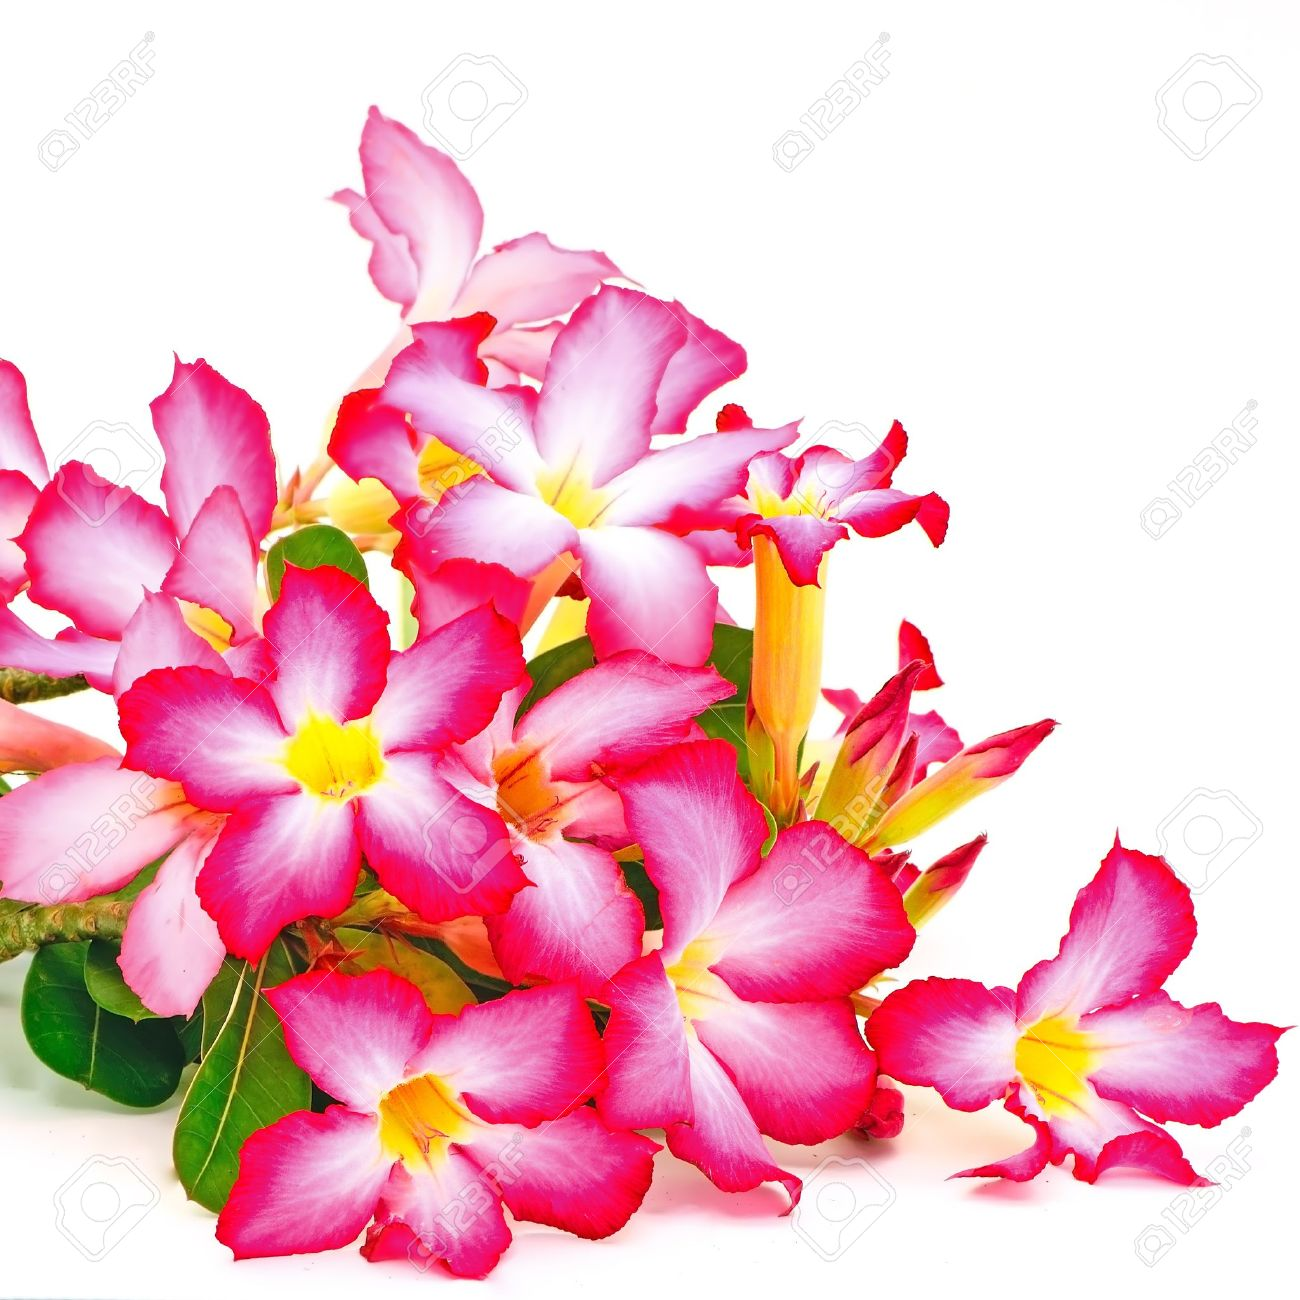 Summer Blossom Of Impala Lily, A Beautiful Red Flower Isolated.